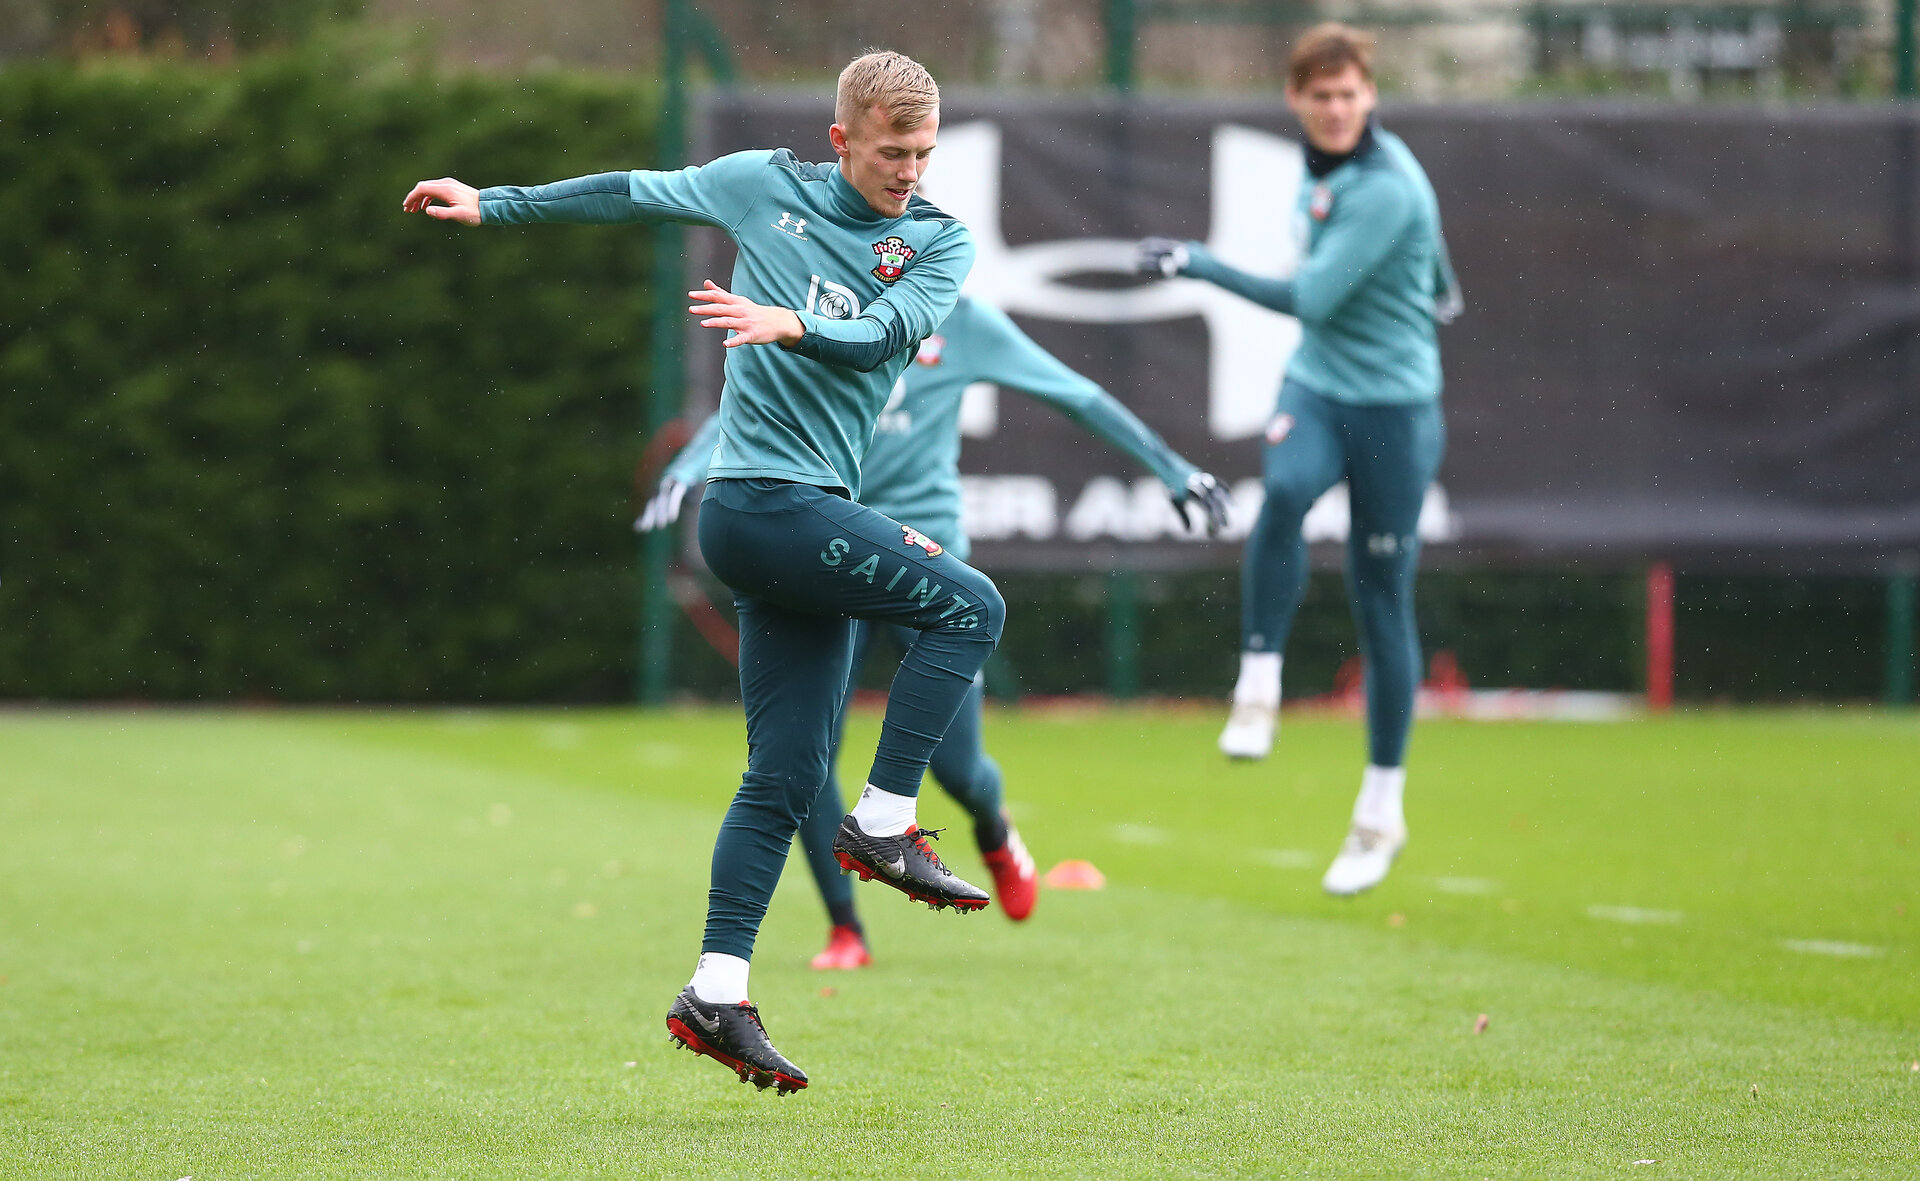 SOUTHAMPTON, ENGLAND - FEBRUARY 13: James Ward-Prowse during a Southampton FC training session at the Staplewood Complex on February 13, 2020 in Southampton, England. (Photo by Matt Watson/Southampton FC via Getty Images)